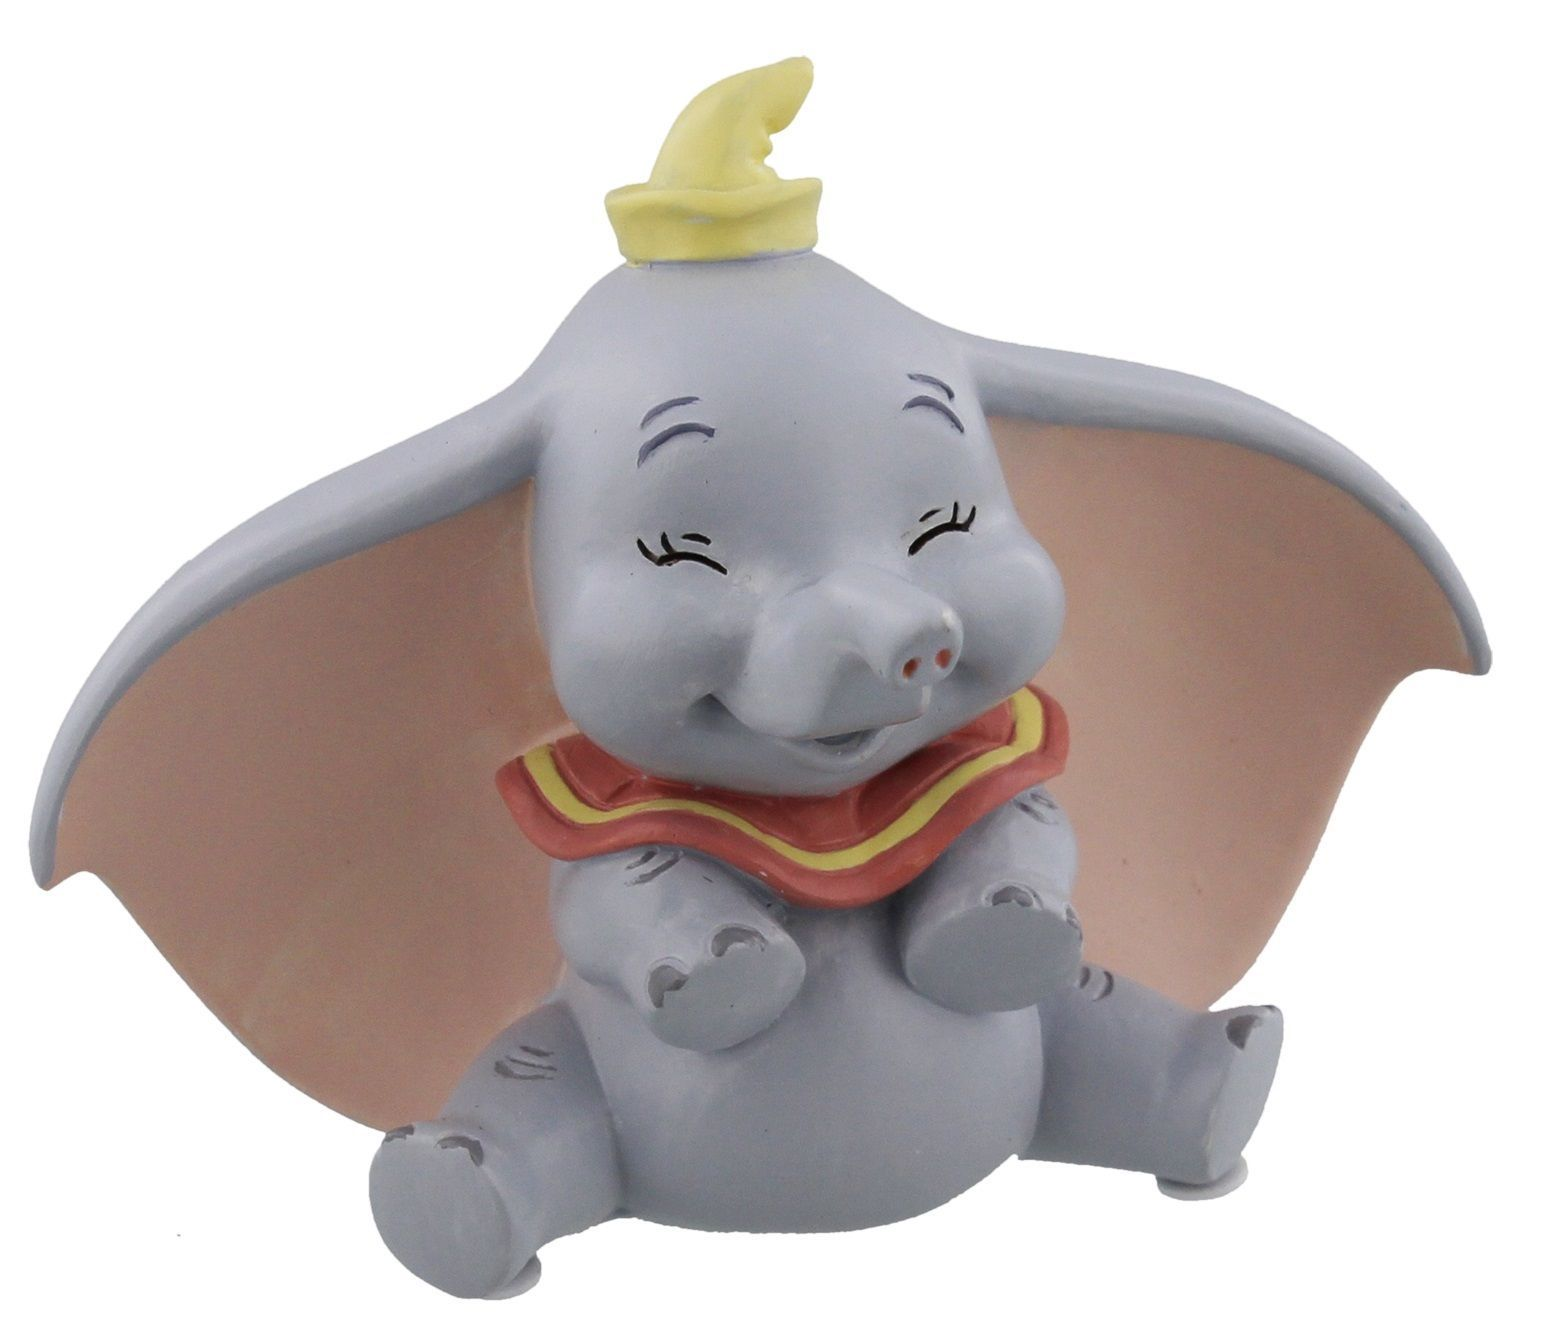 Disney Collectable Figurine Gift Magical Moments Dumbo